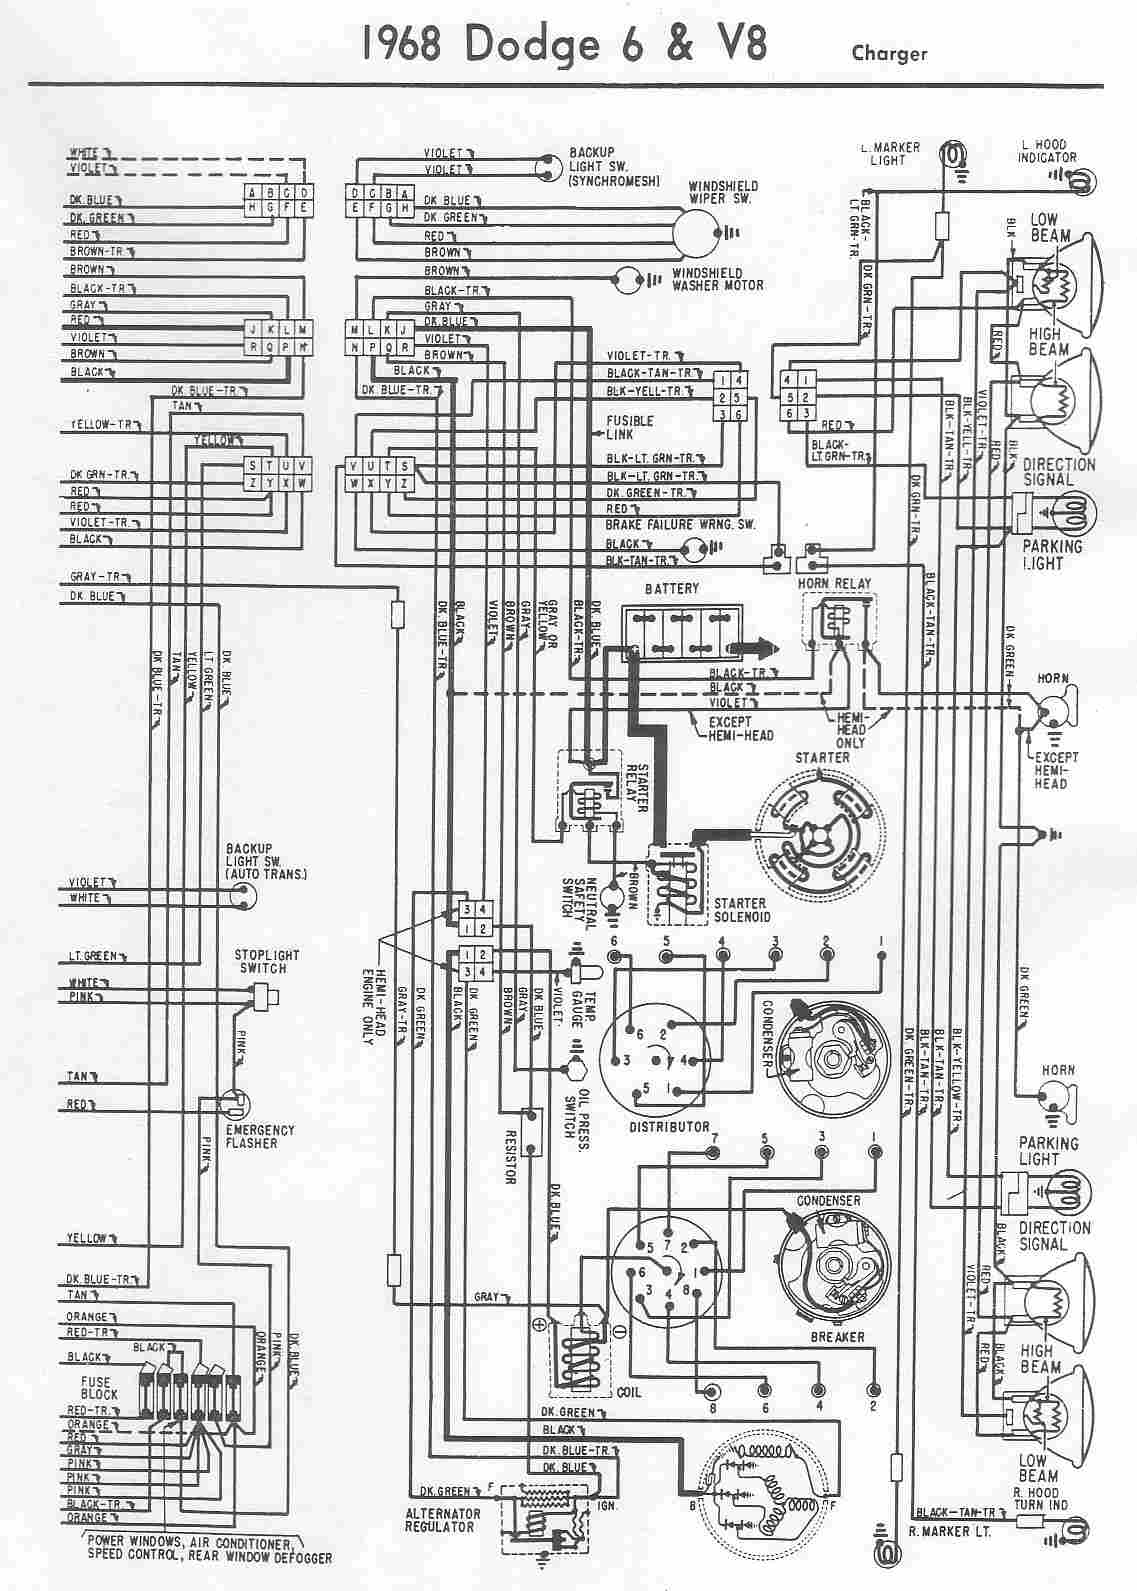 medium resolution of 1970 dodge charger wiring diagram likewise 1969 dodge charger tail 2010 dodge charger fuse locations 1969 dodge charger fuse box diagram